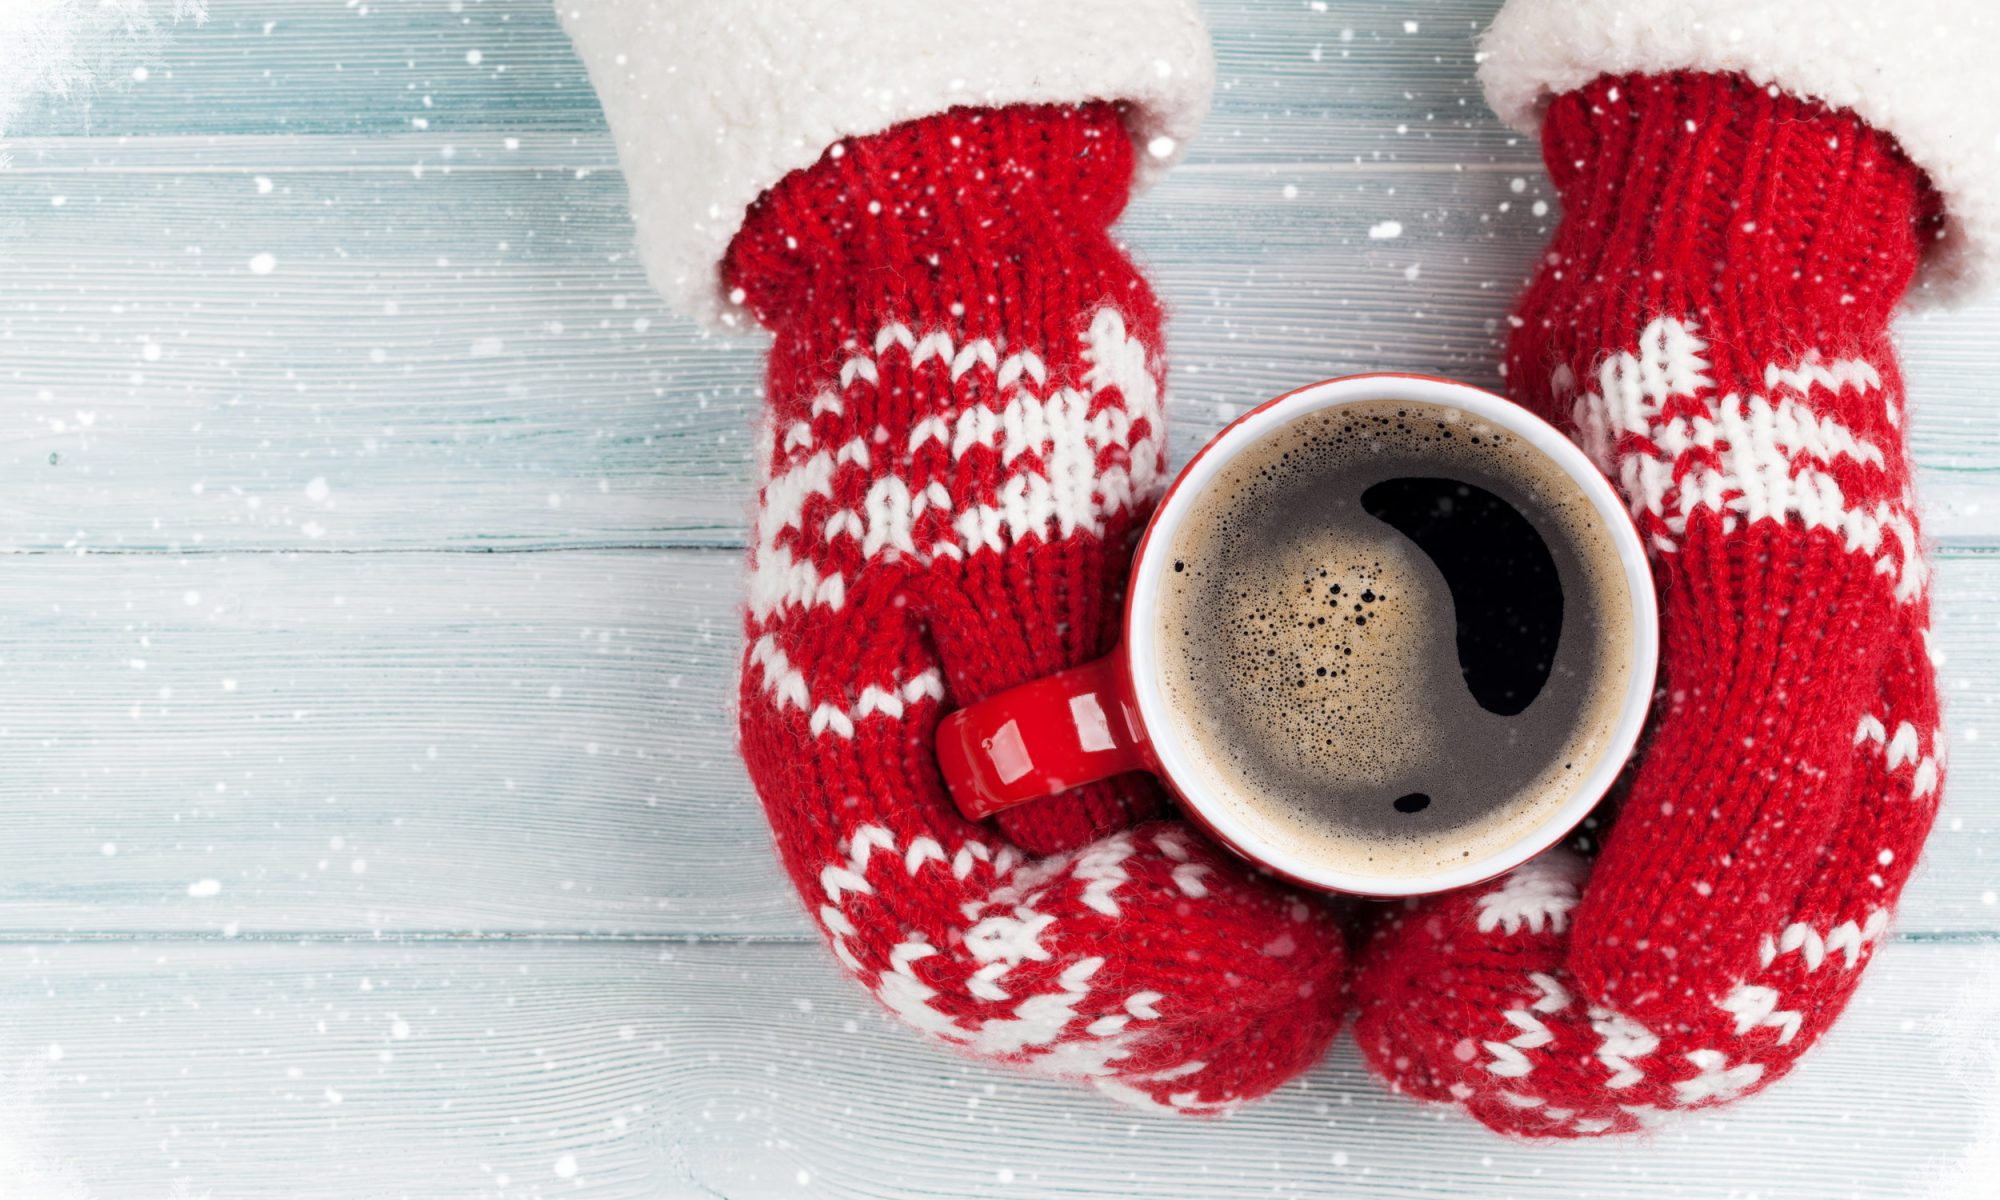 EC: How to Stay Caffeinated in a Snow Storm